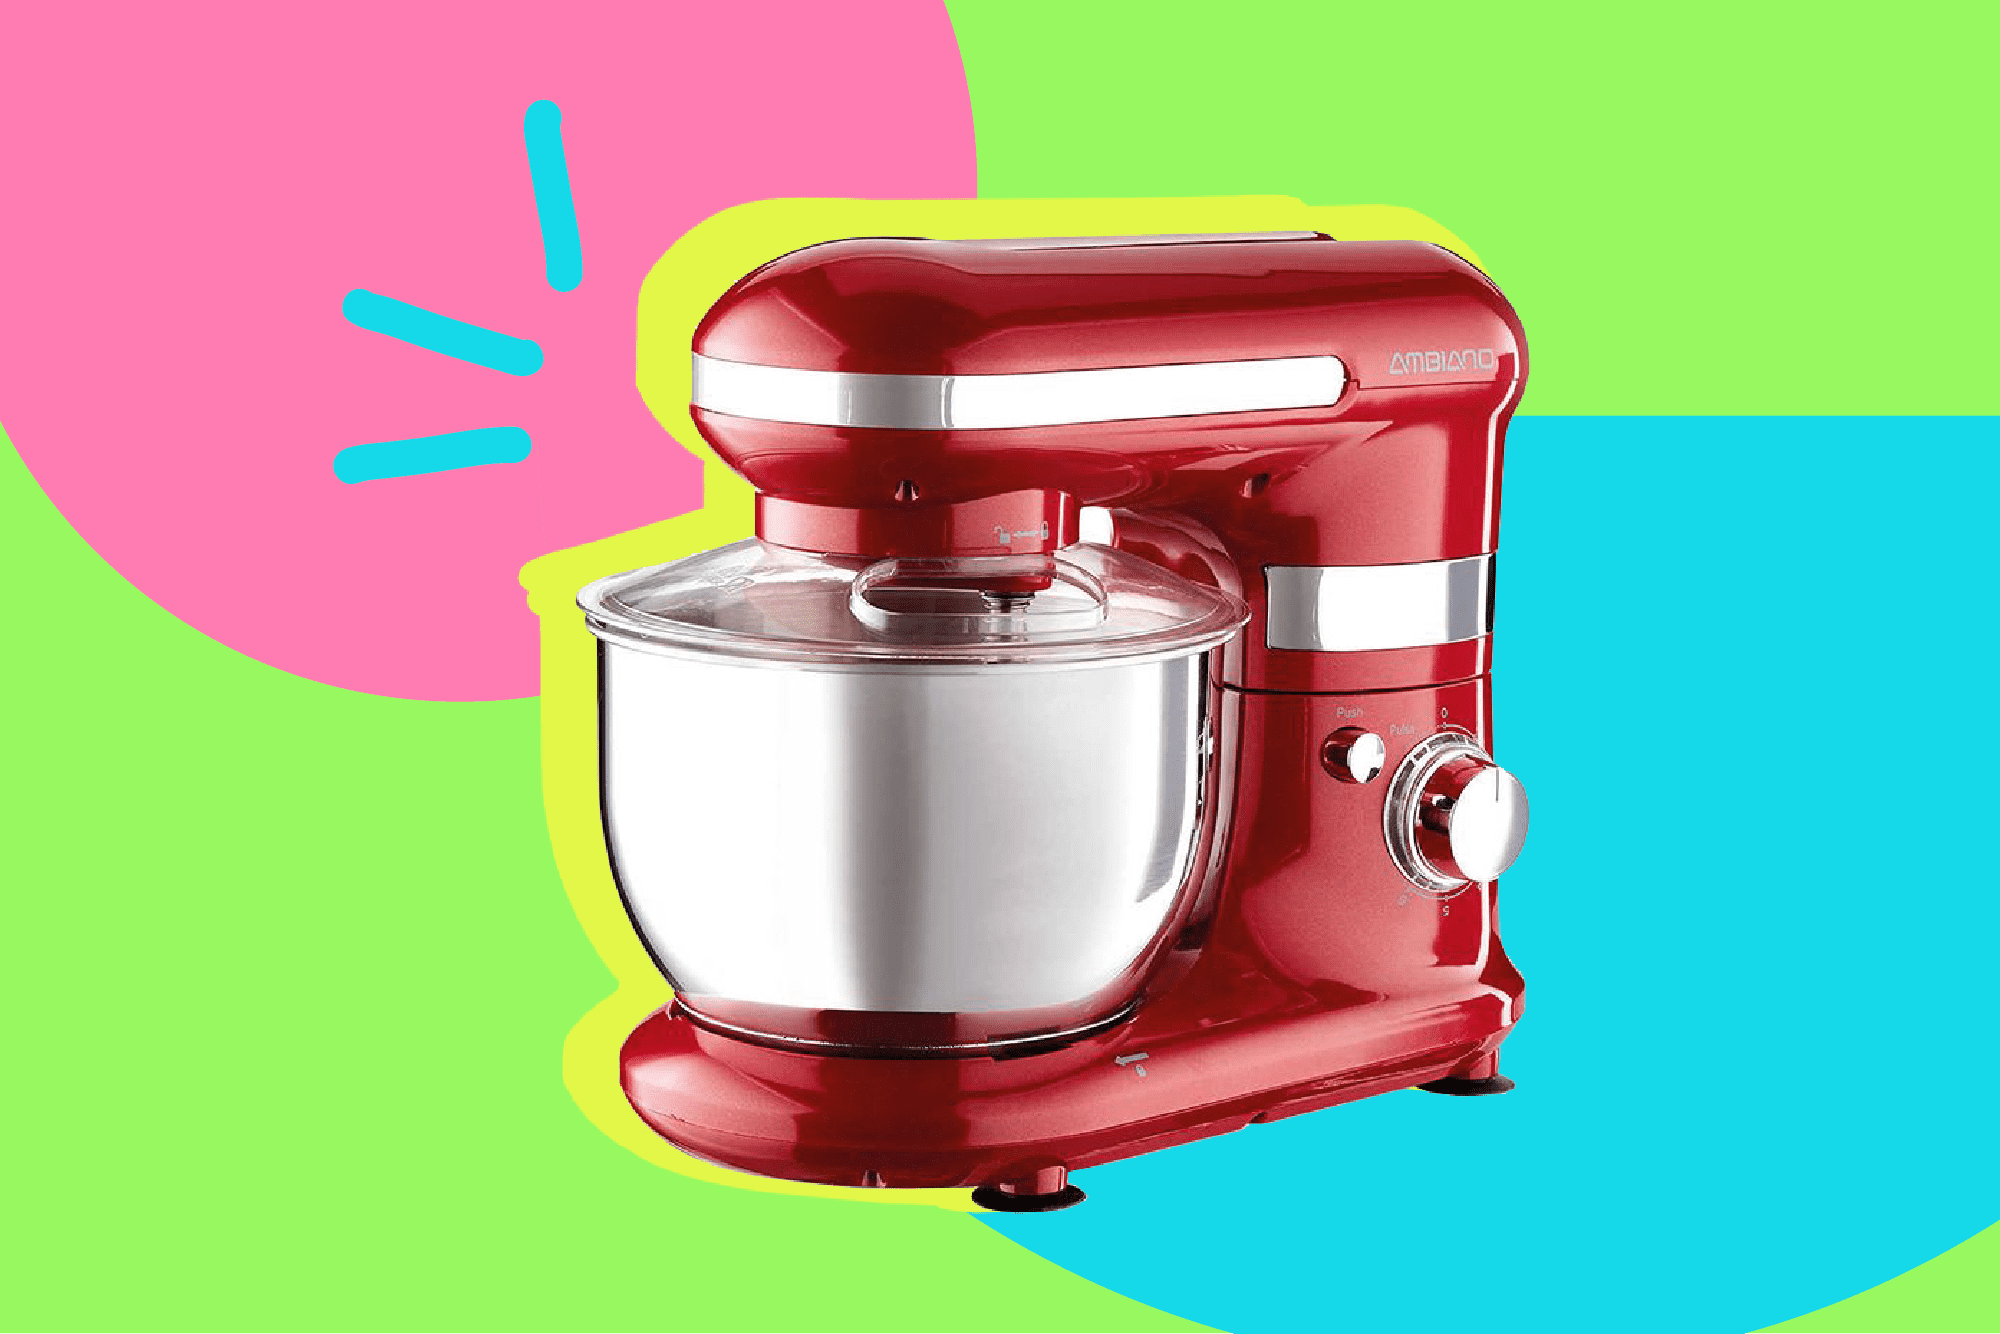 We Tried Aldi's $60 Mixer on 3 Essential Baking Recipes | Kitchn on pasta with kitchenaid mixer, cookies with kitchenaid mixer, cinnamon rolls with kitchenaid mixer, kitchenaid 9-speed hand mixer, making bread with vitamix, making bread with olive oil, making bread at home,